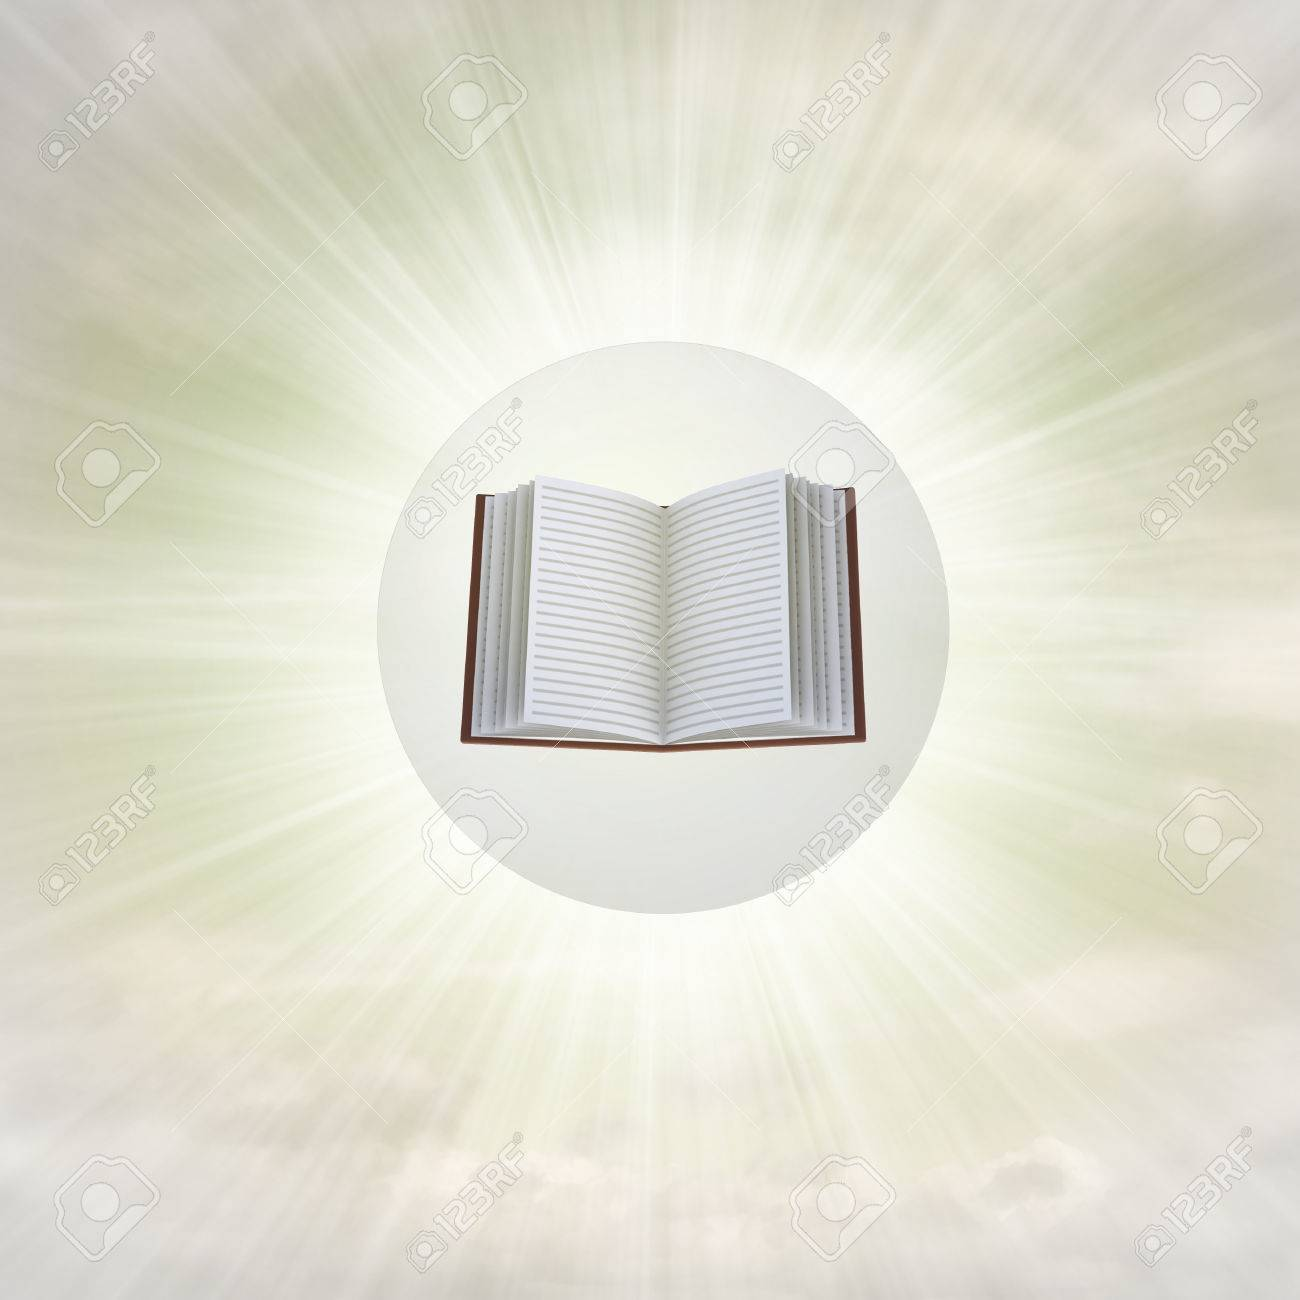 open book in glossy bubble in the air with flare illustration Stock Photo - 22741719